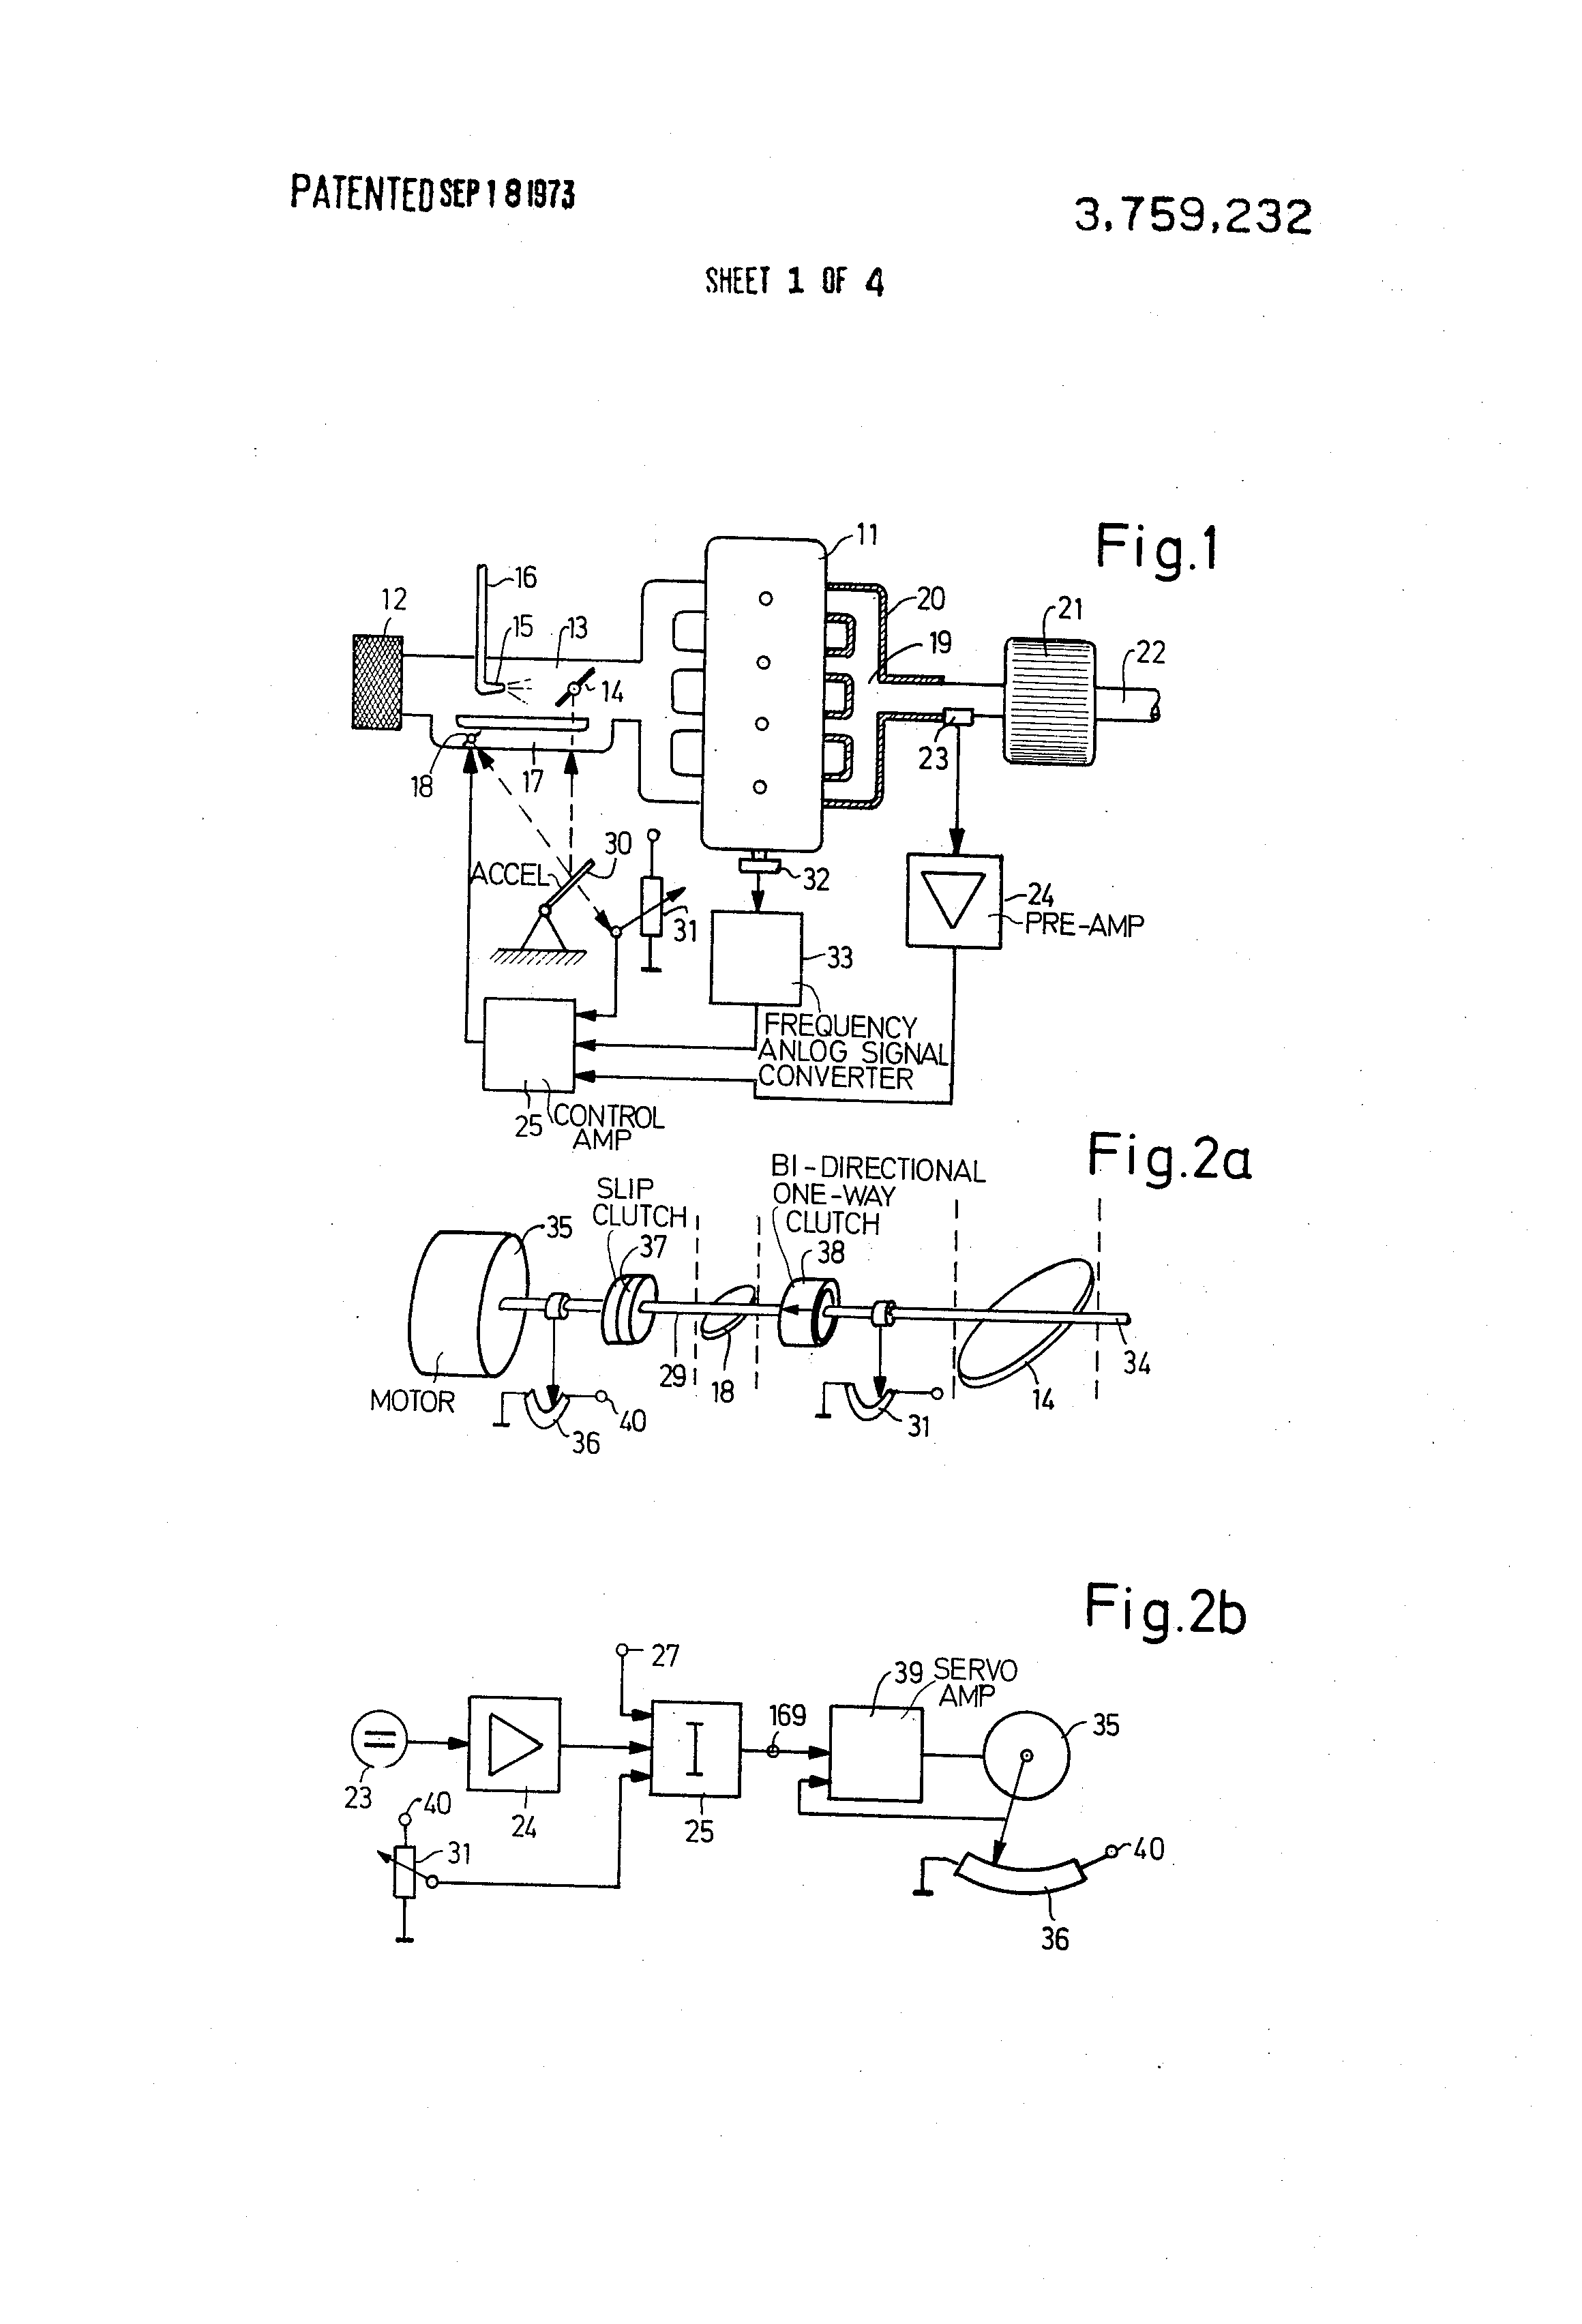 Brevet Us3759232 Method And Apparatus To Remove Polluting St51 Solenoid Starter Switch Wiring Diagram Patent Drawing